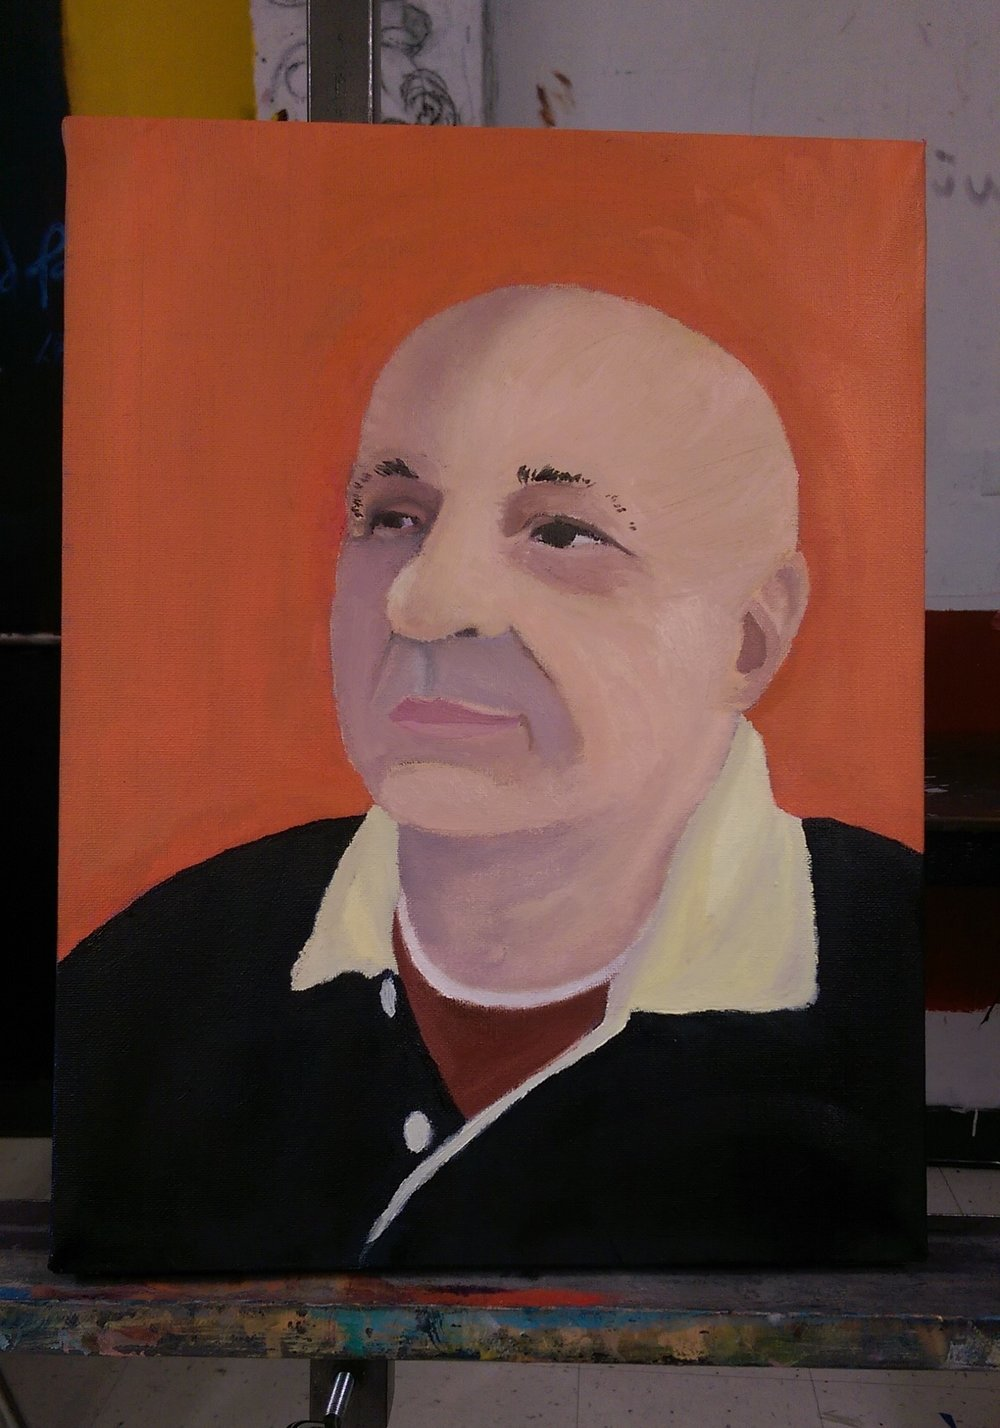 For this project, I had to do an oil painting of someone I knew, so I decided I would paint my Dad.